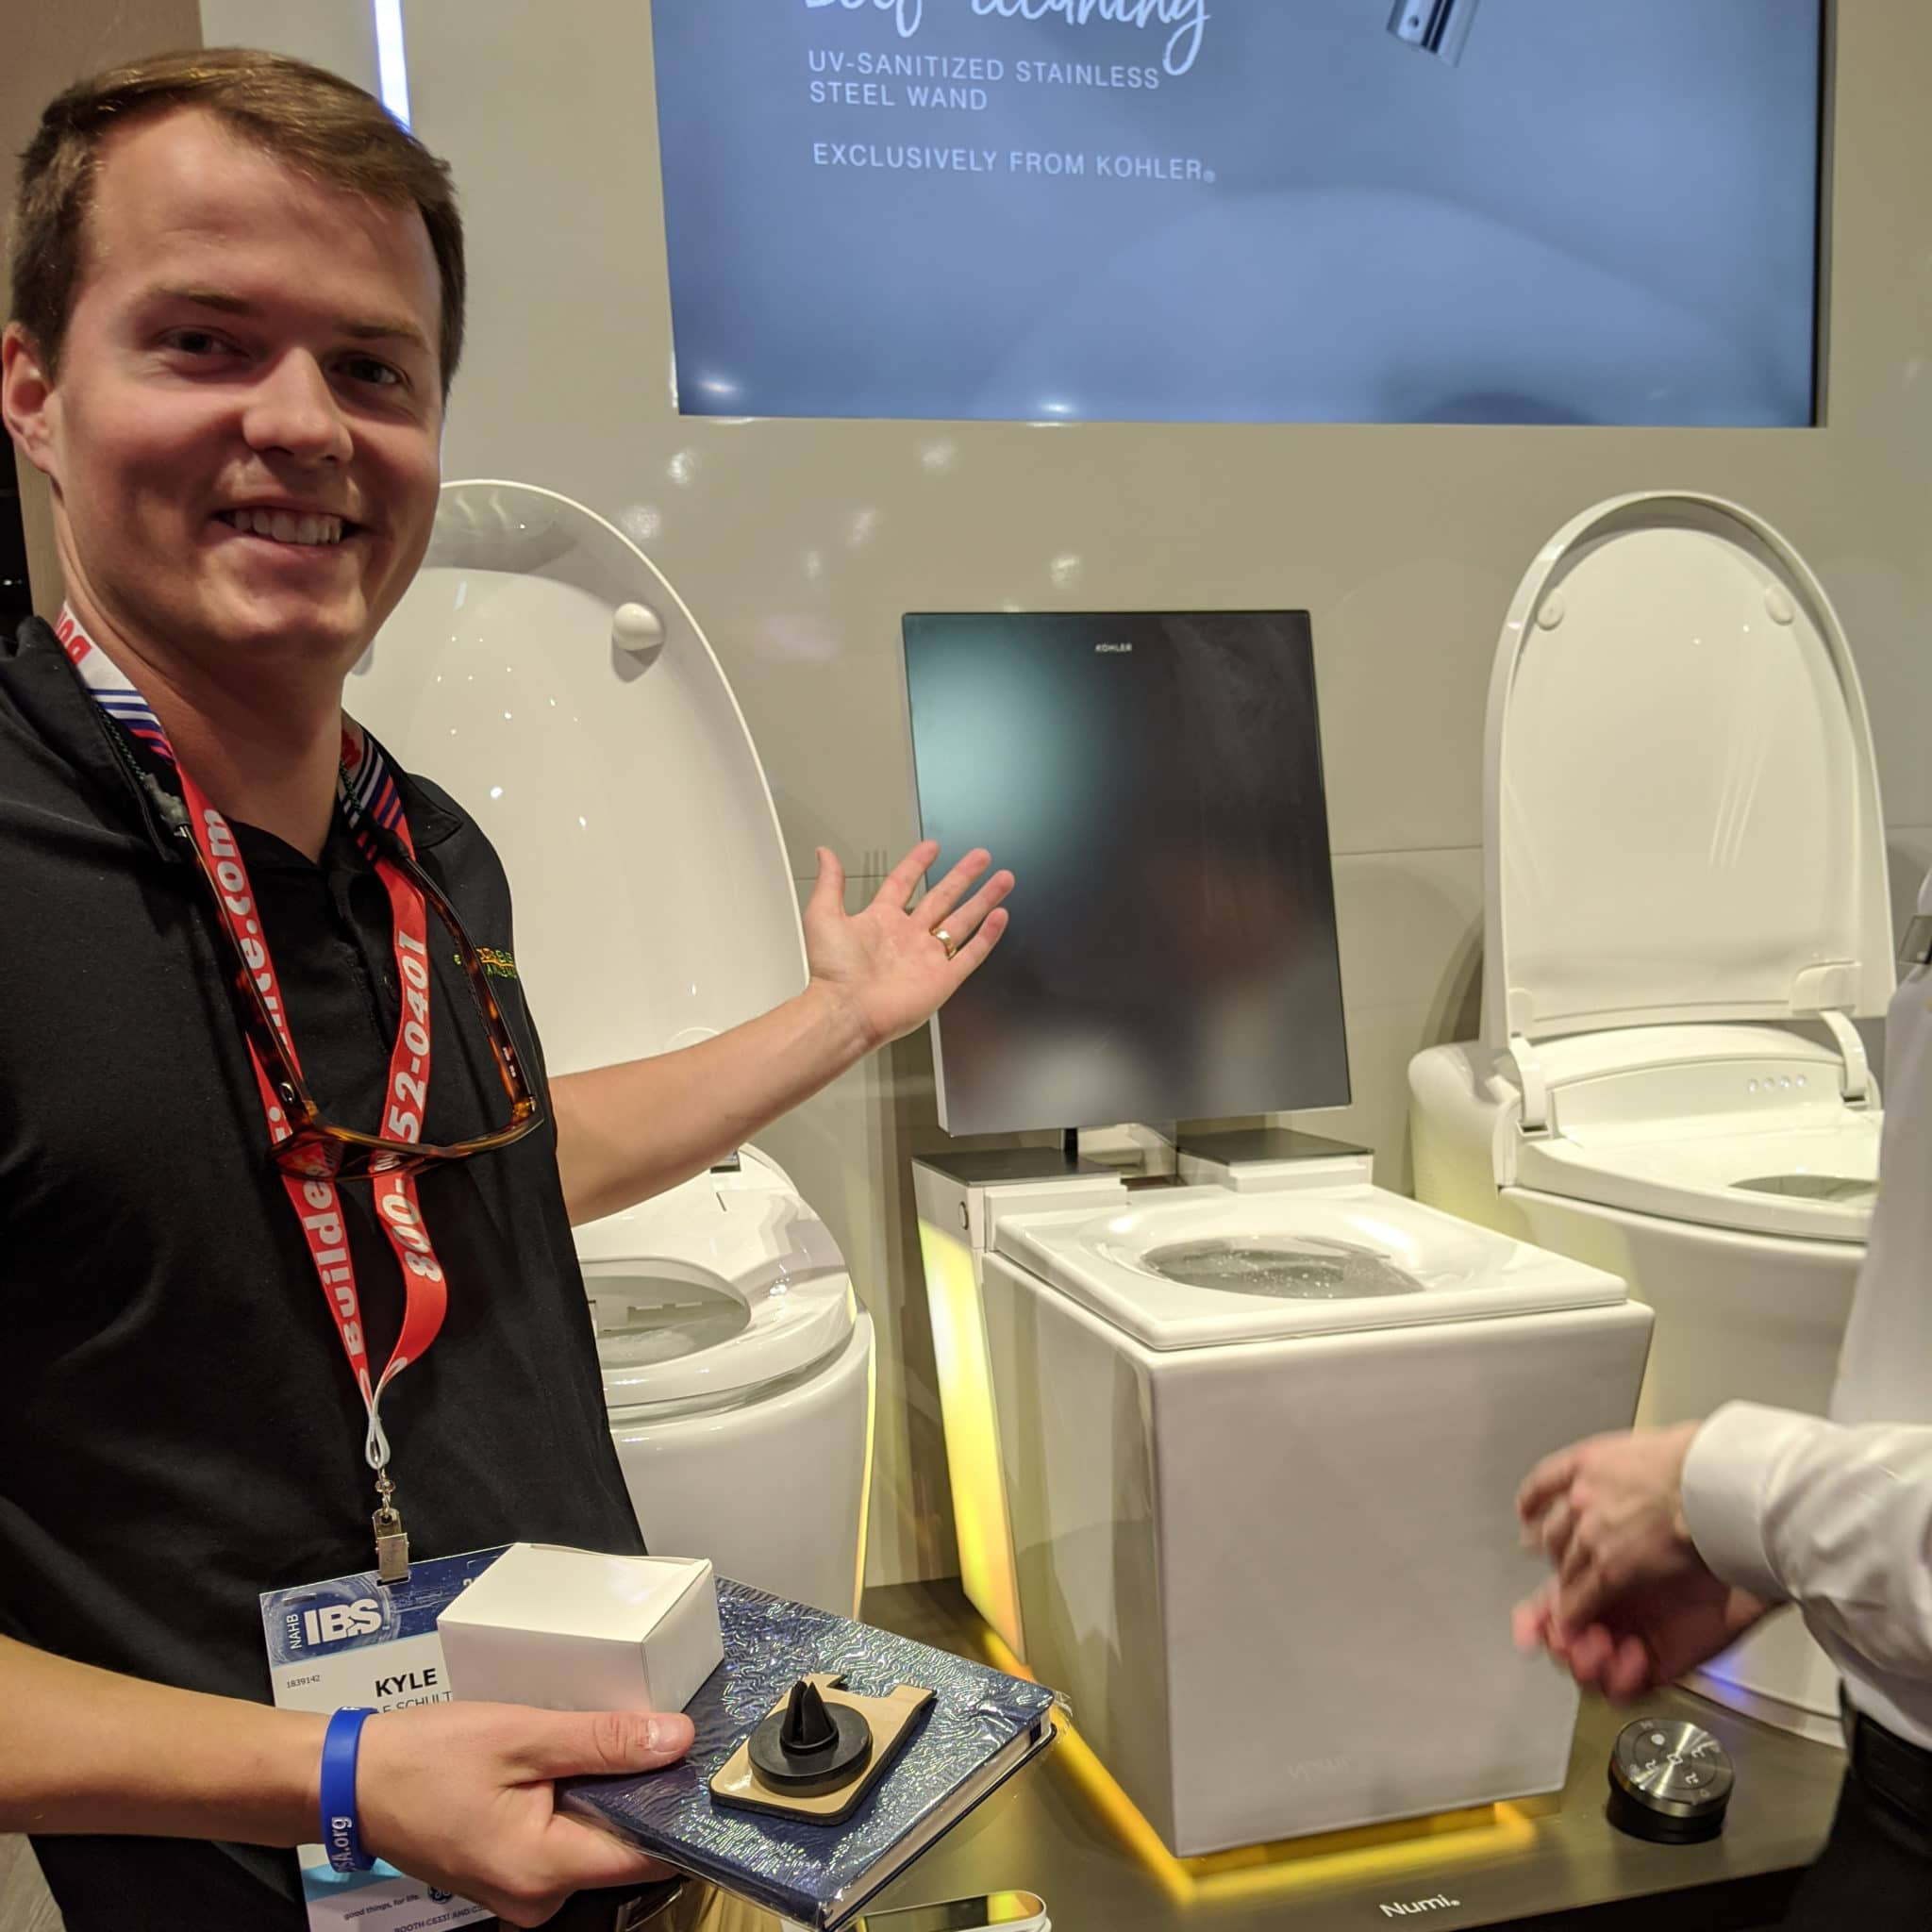 Kyle showing off the Numi throne at IBS 2020